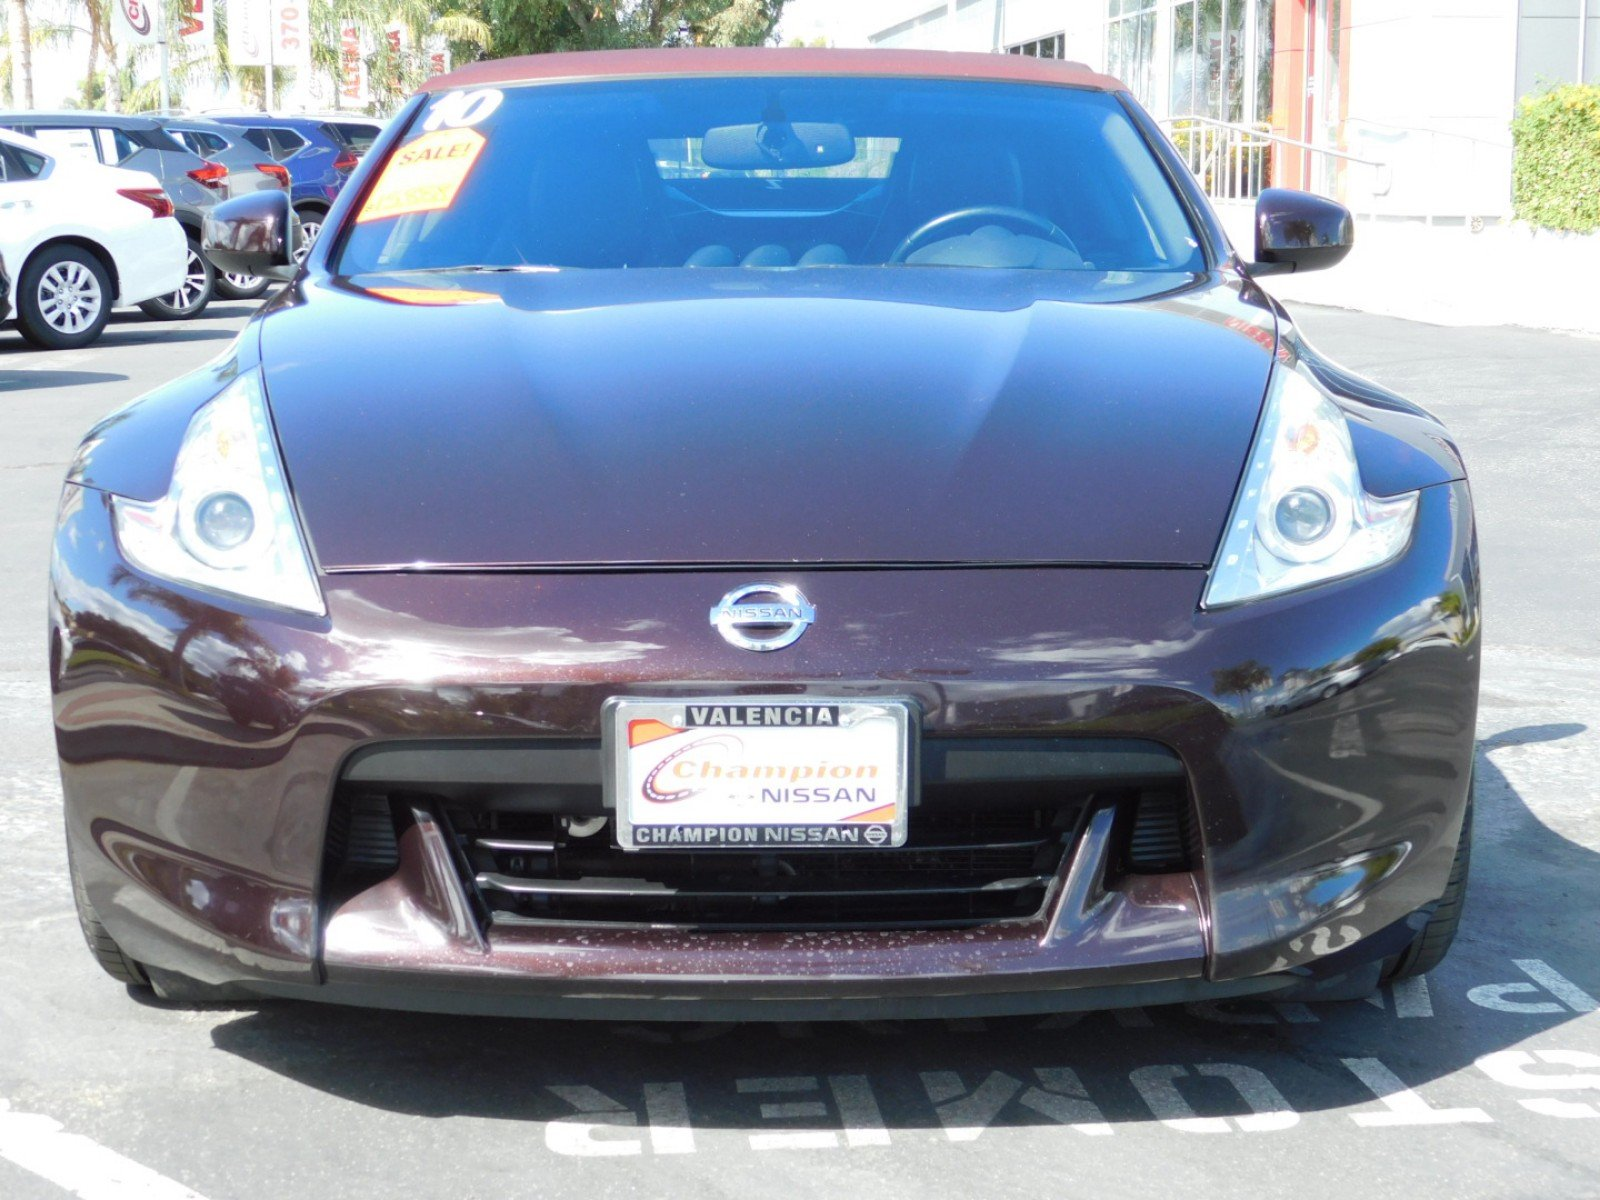 2010 Nissan Maxima Hid Headlights Recomended Car 370z Wiring Diagram Headlight Harness Trusted Diagrams